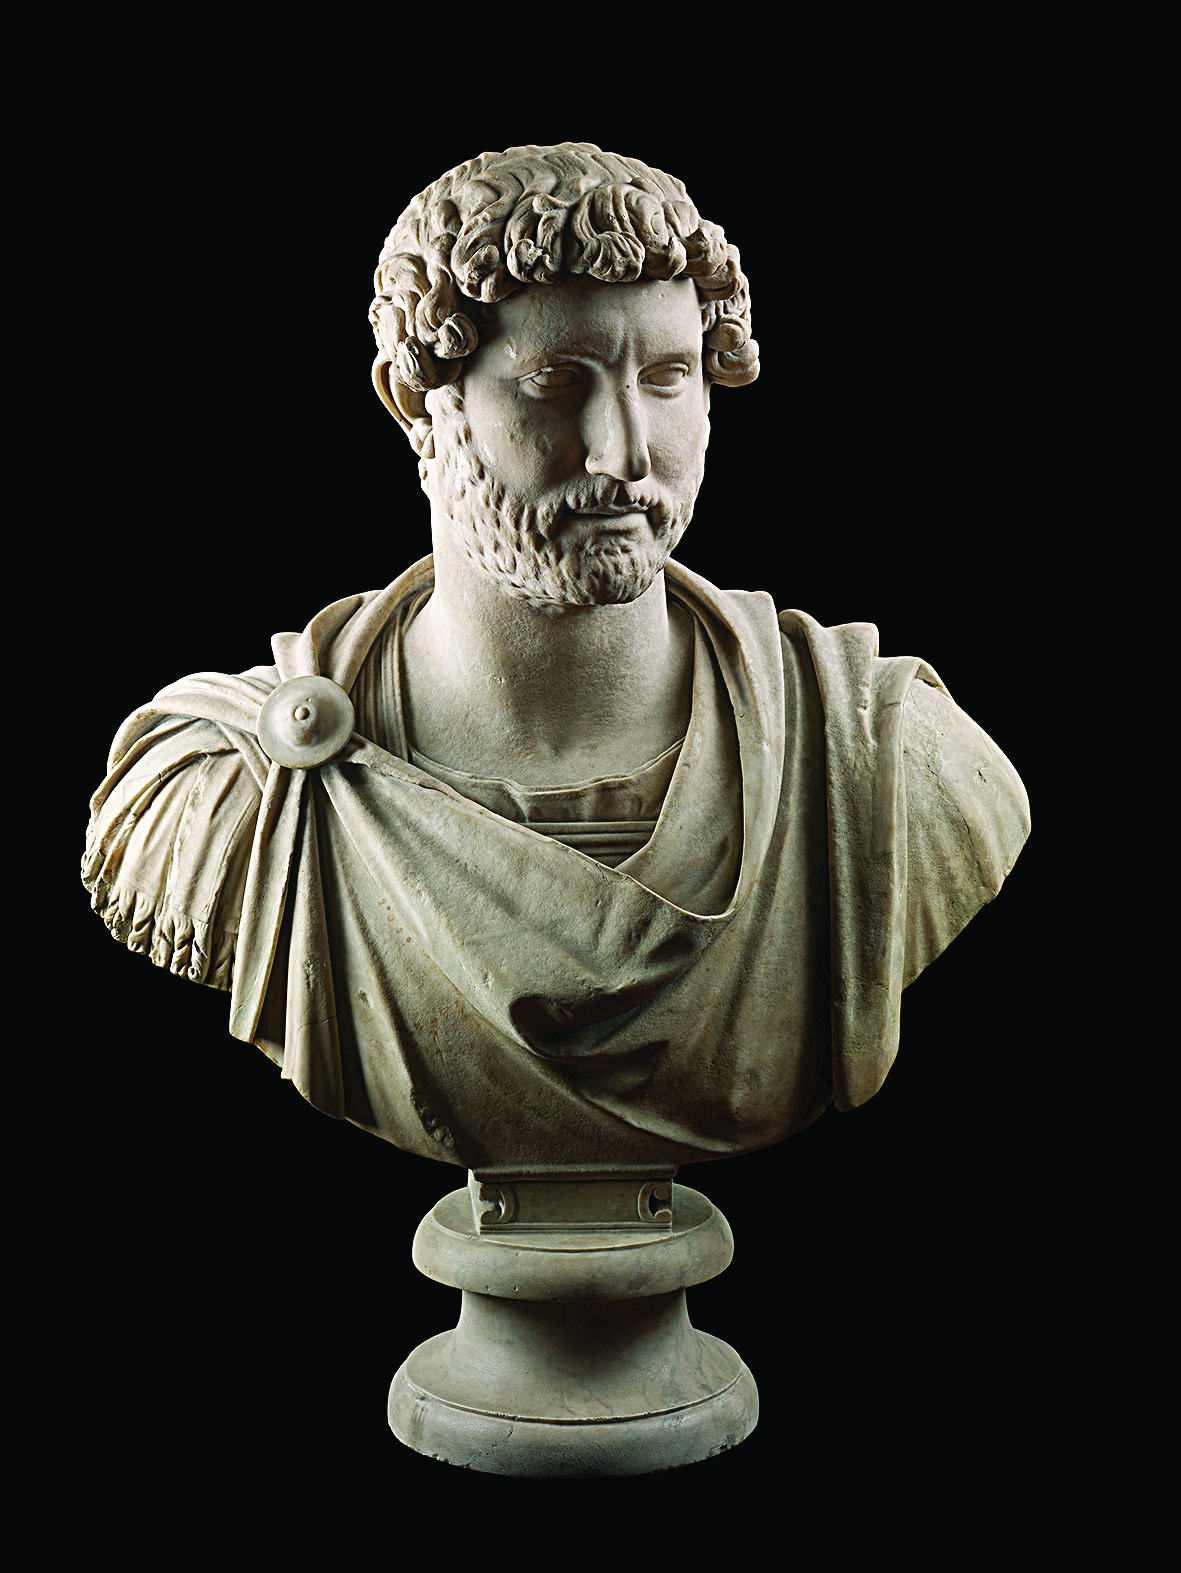 Portrait bust of Hadrian  Hadrian's Villa, Tivoli, Italy, about 125–130 CE marble. 1805,0703.95  © Trustees of the British Museum, 2018. All rights reserved